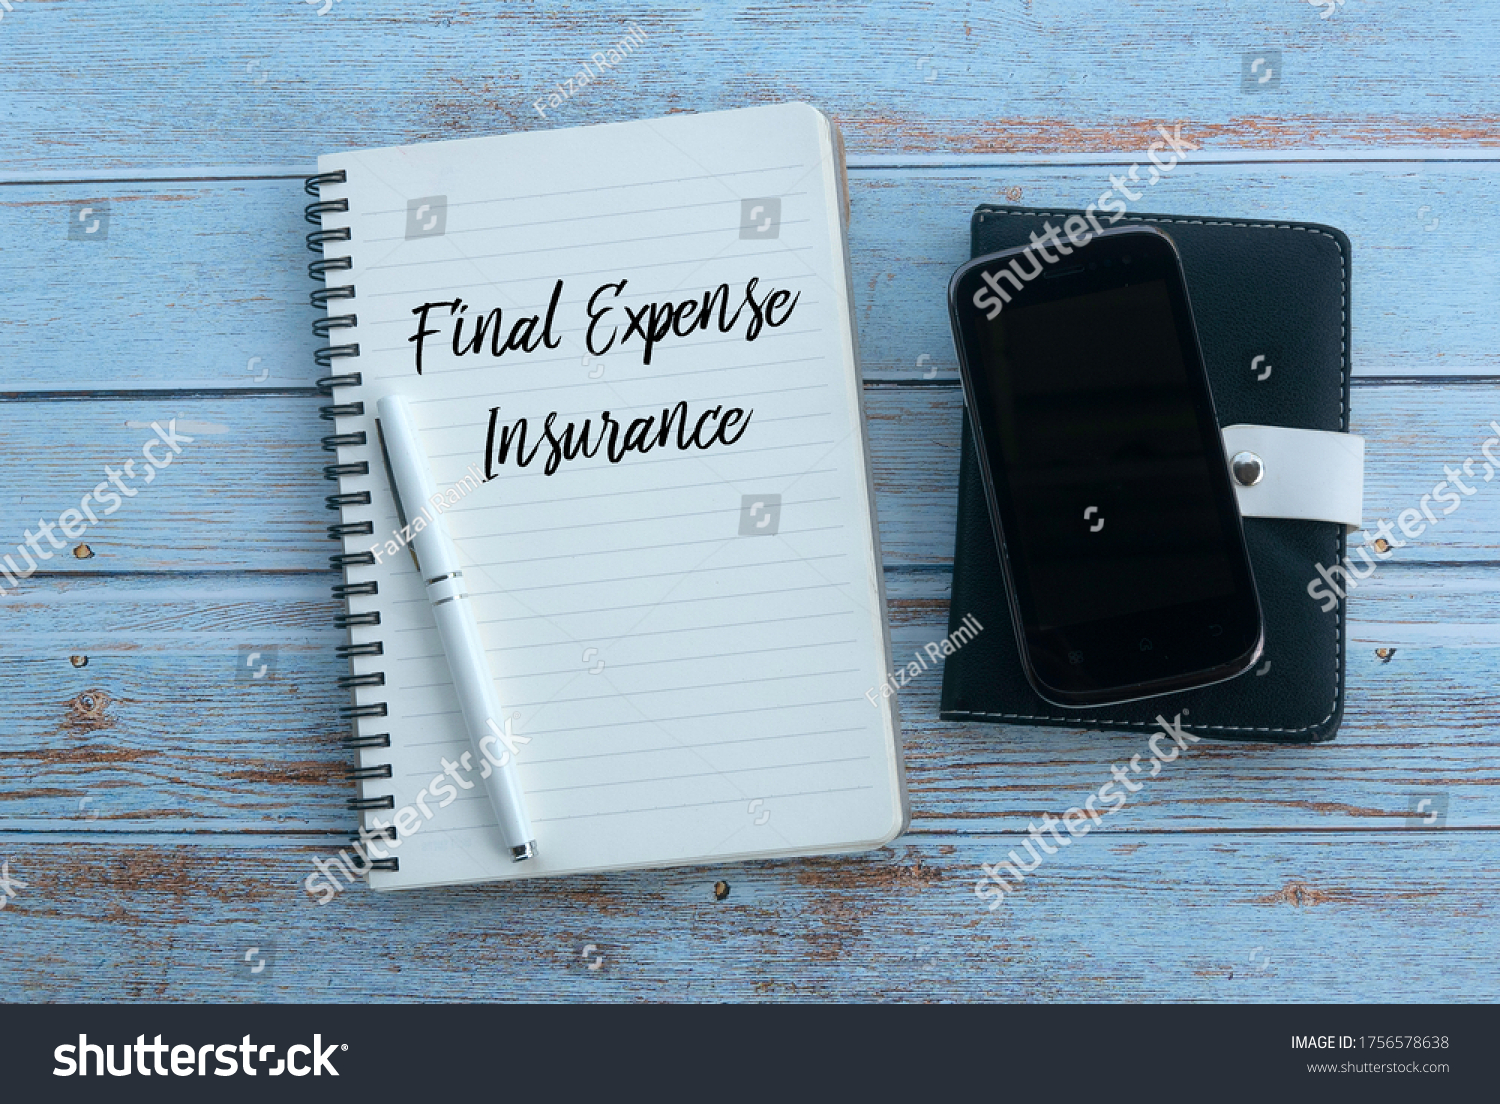 Top view of mobile phone,pen and notebook written with Final Expense Insurance on wooden background. #1756578638